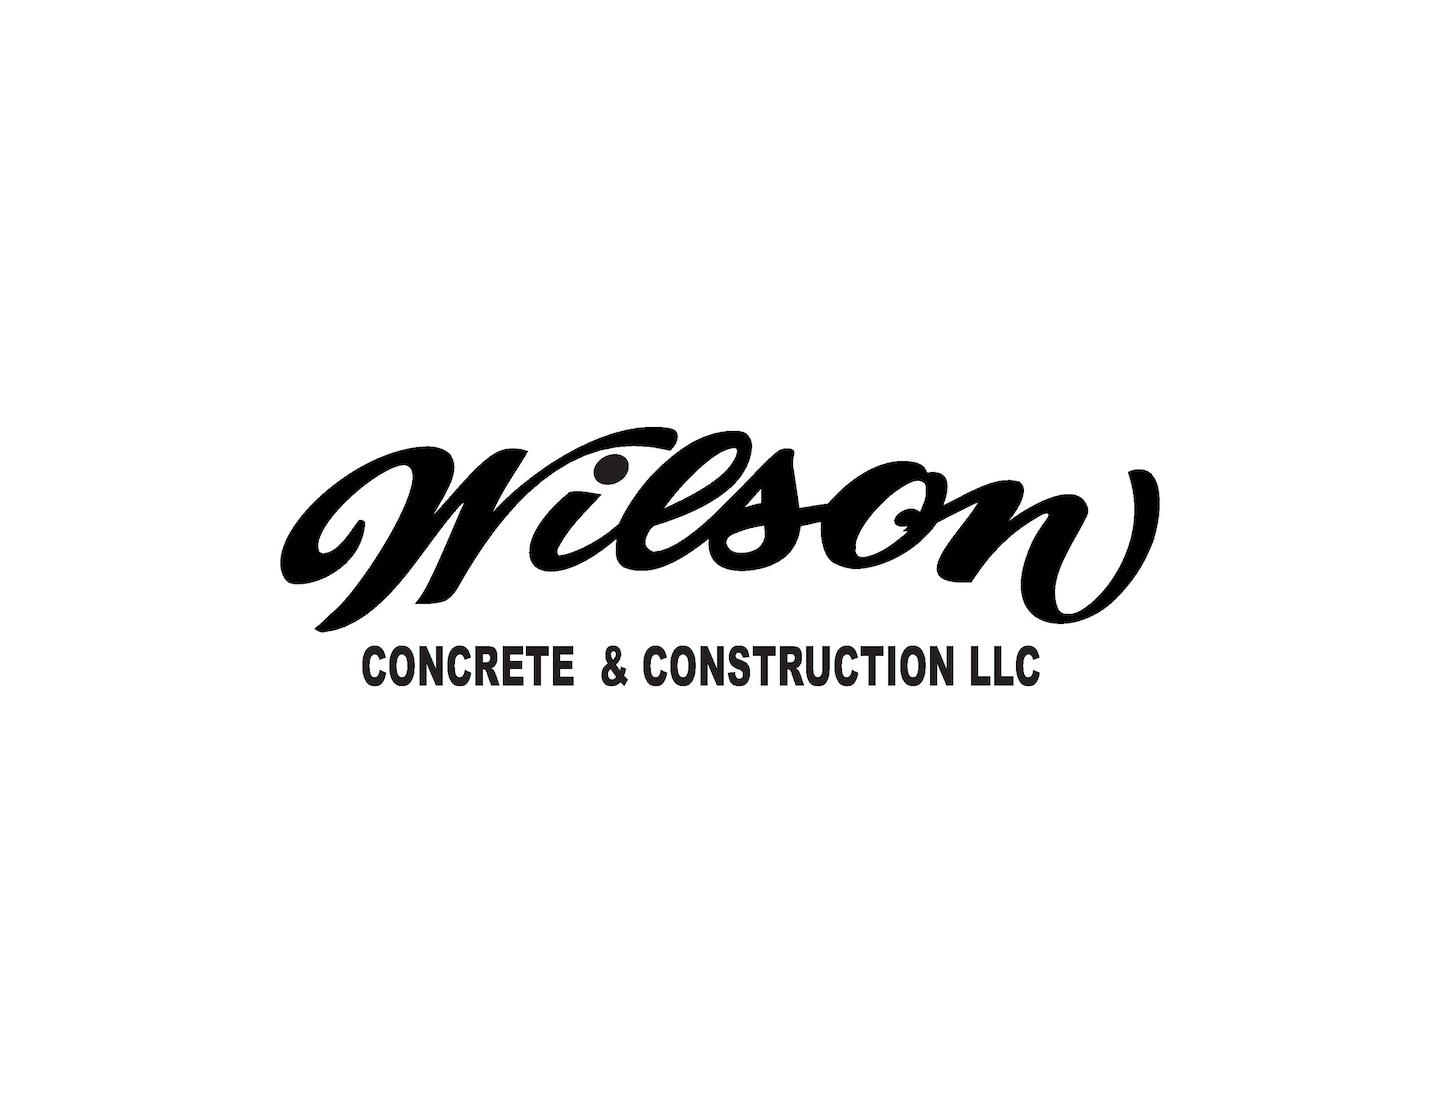 Wilson Concrete & Construction LLC